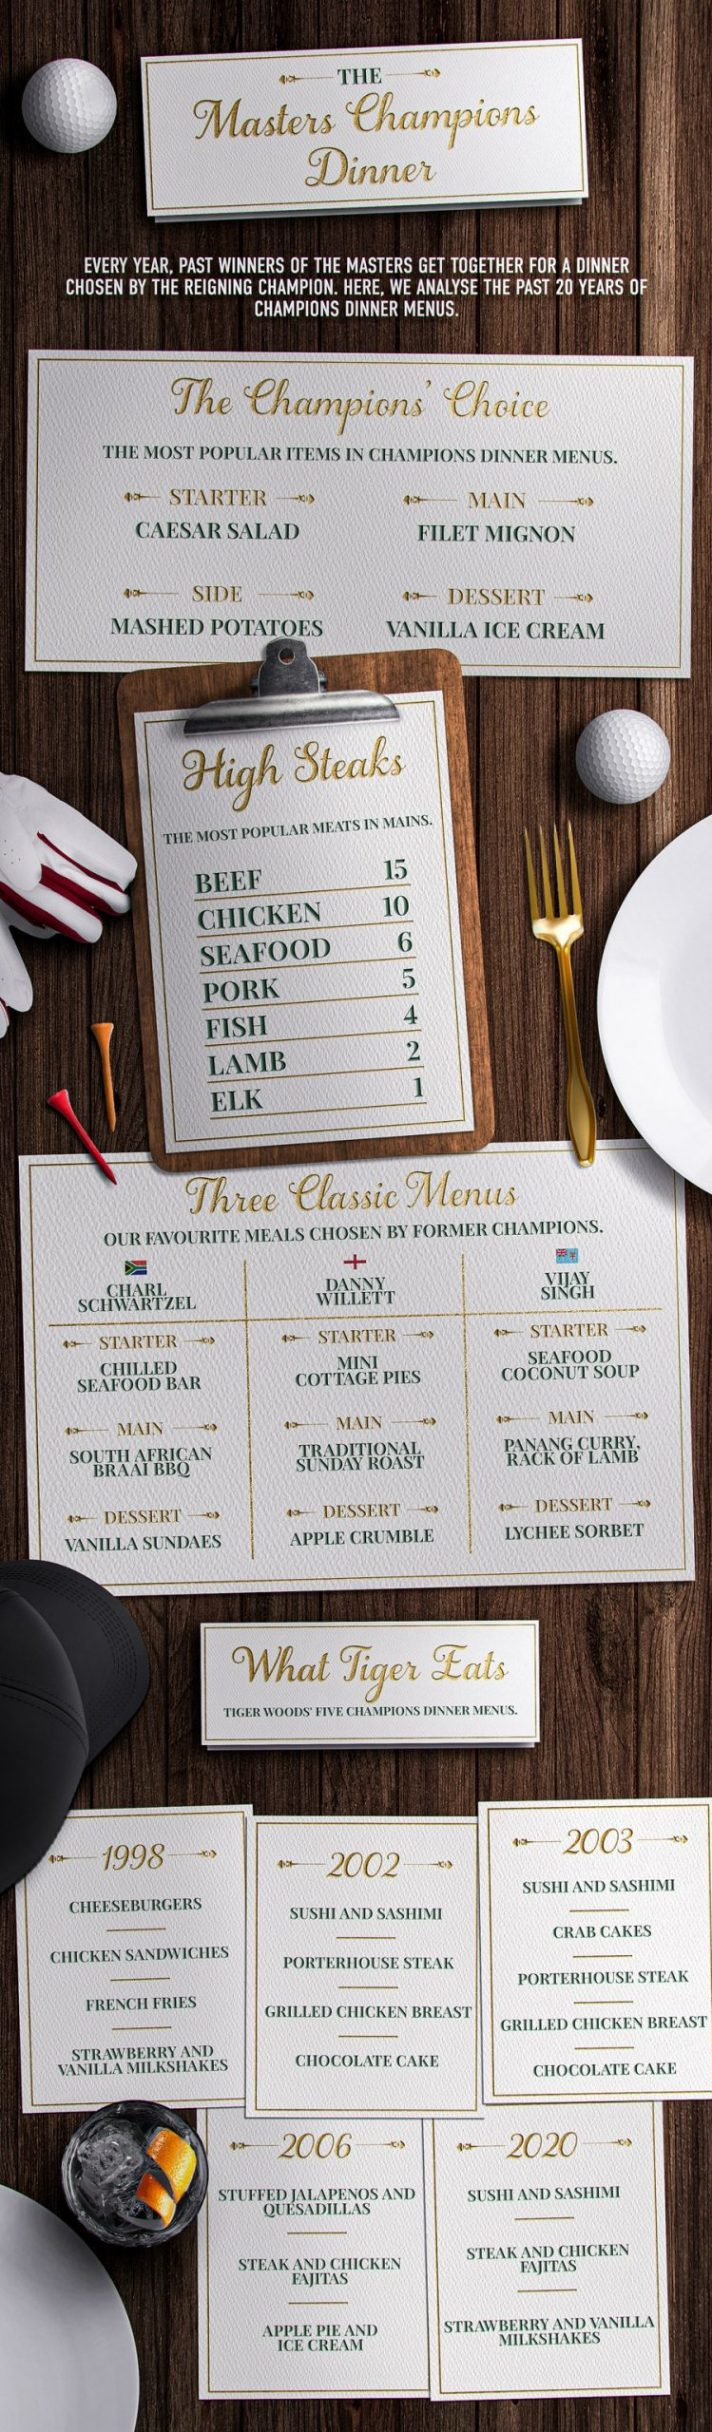 One of the most storied traditions of The Masters is the Champions' Dinner.